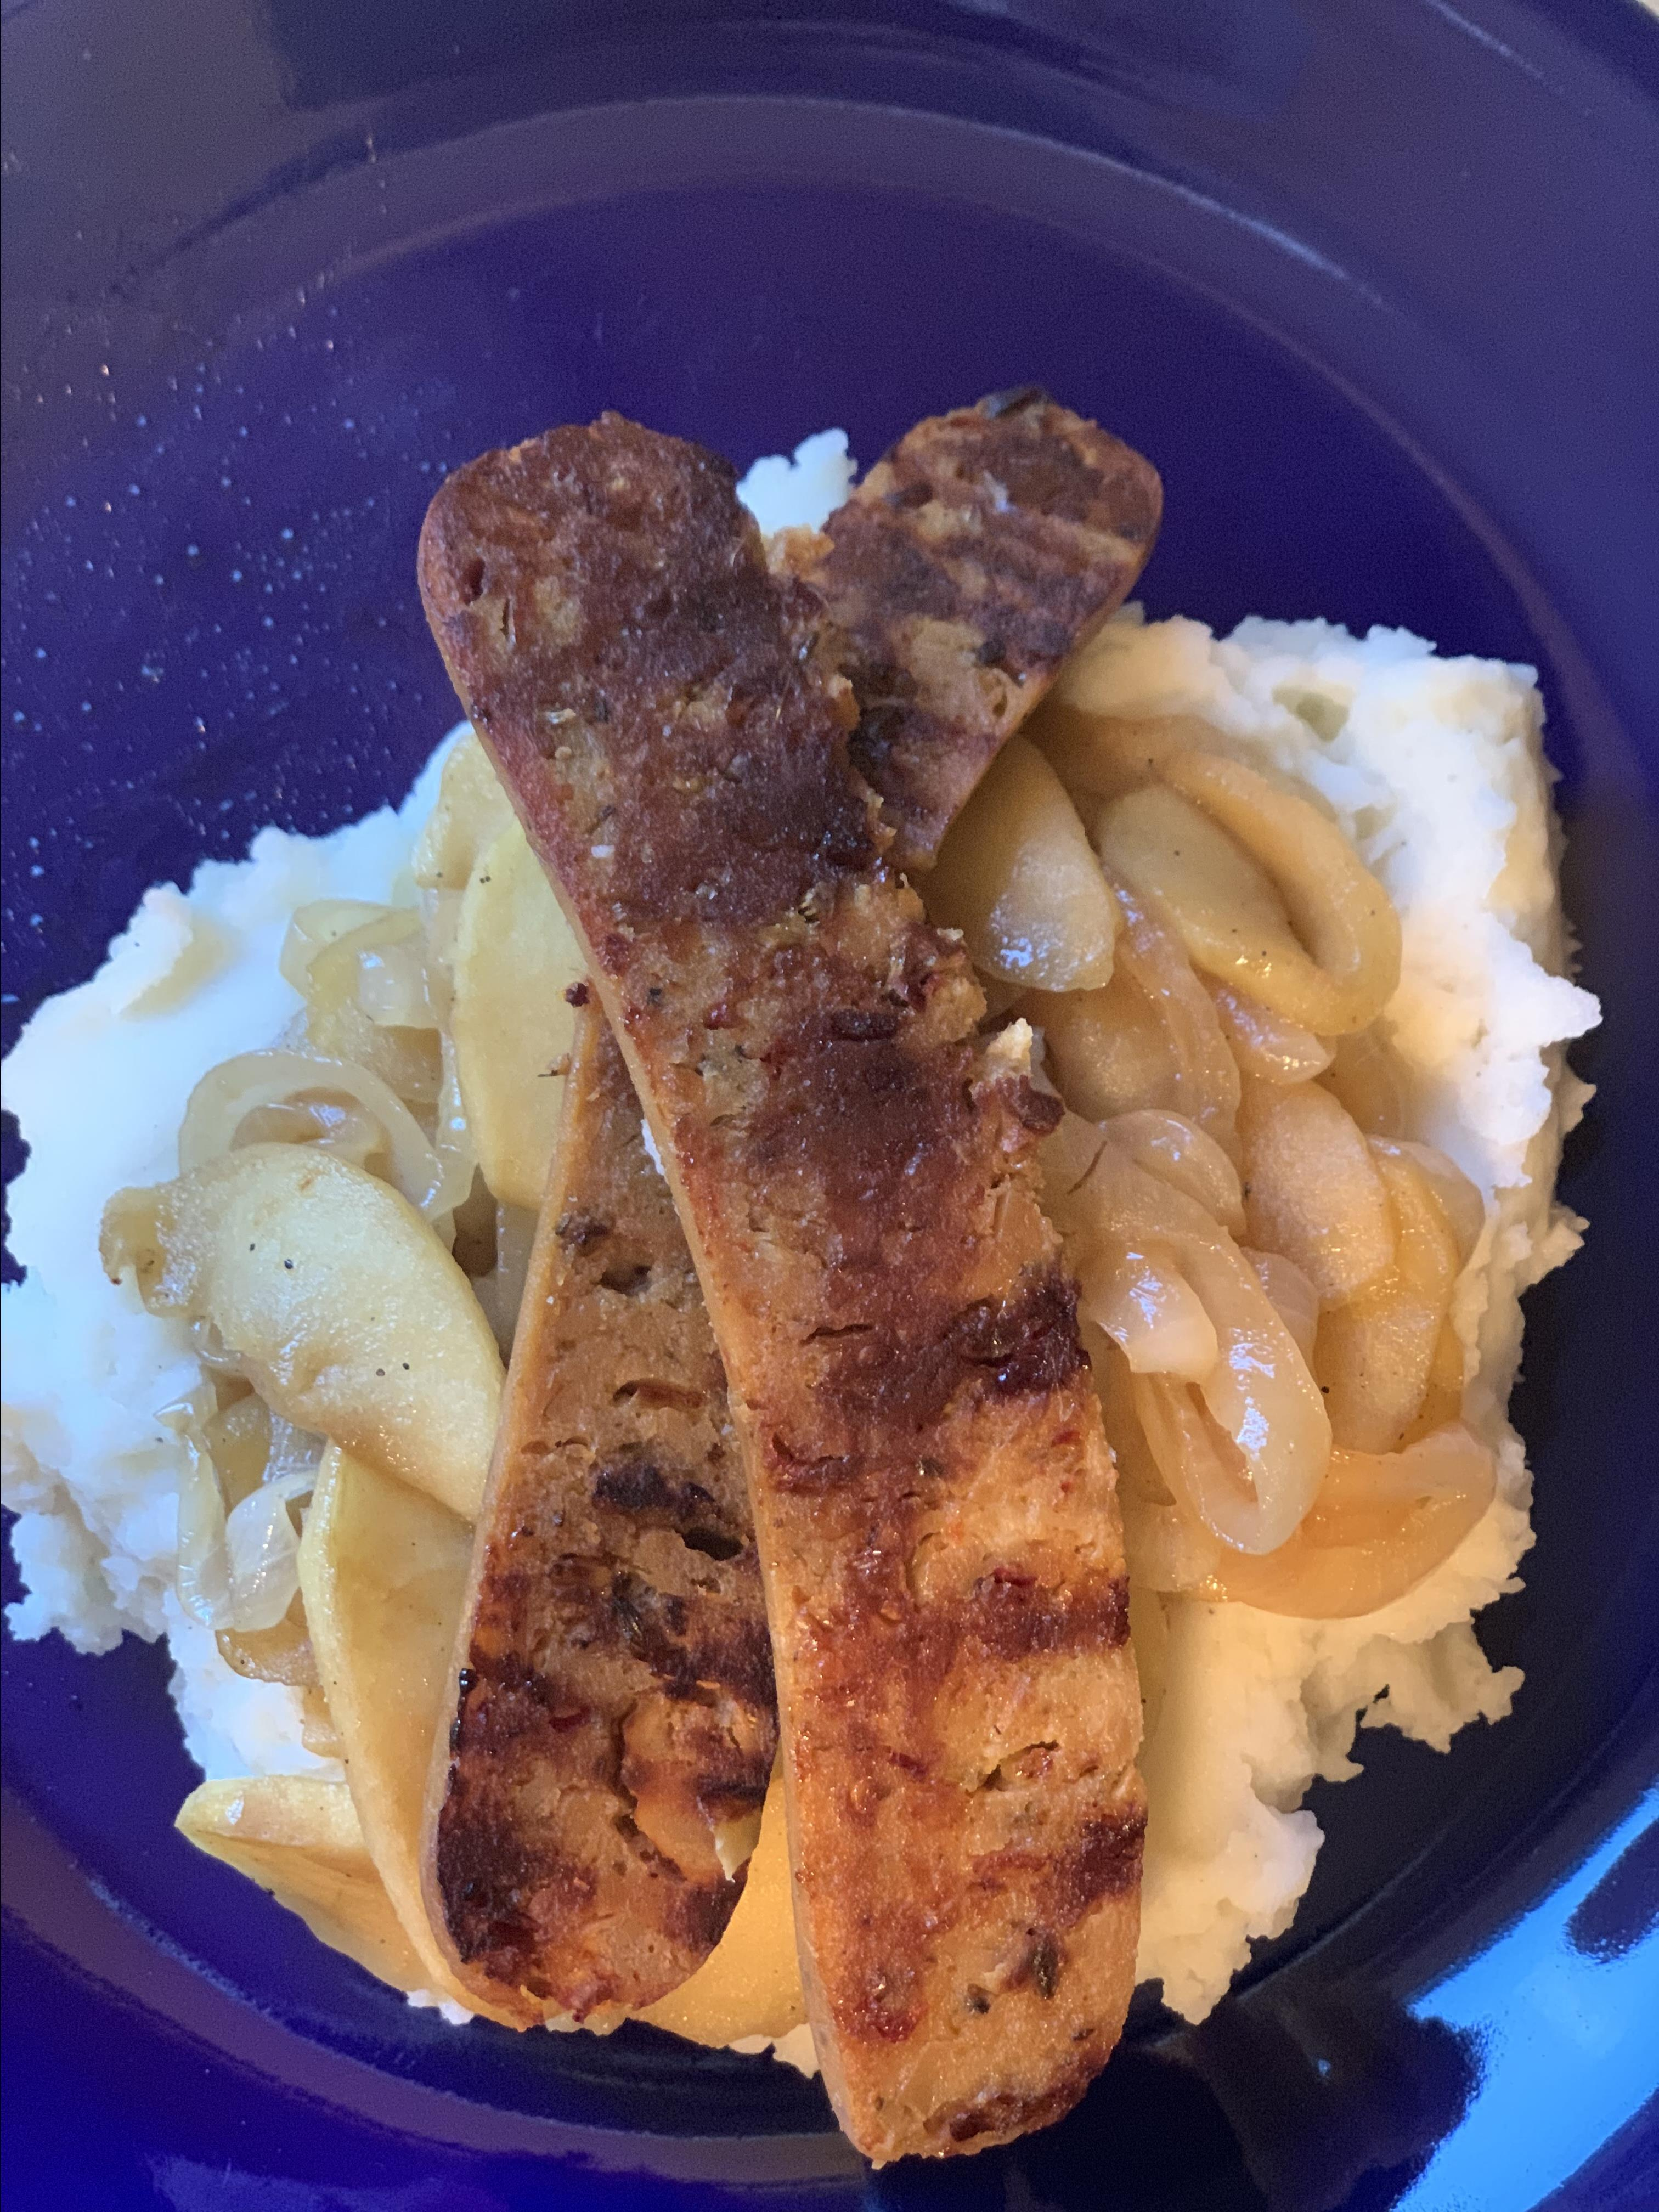 Grilled Sausages with Caramelized Onions and Apples traunza